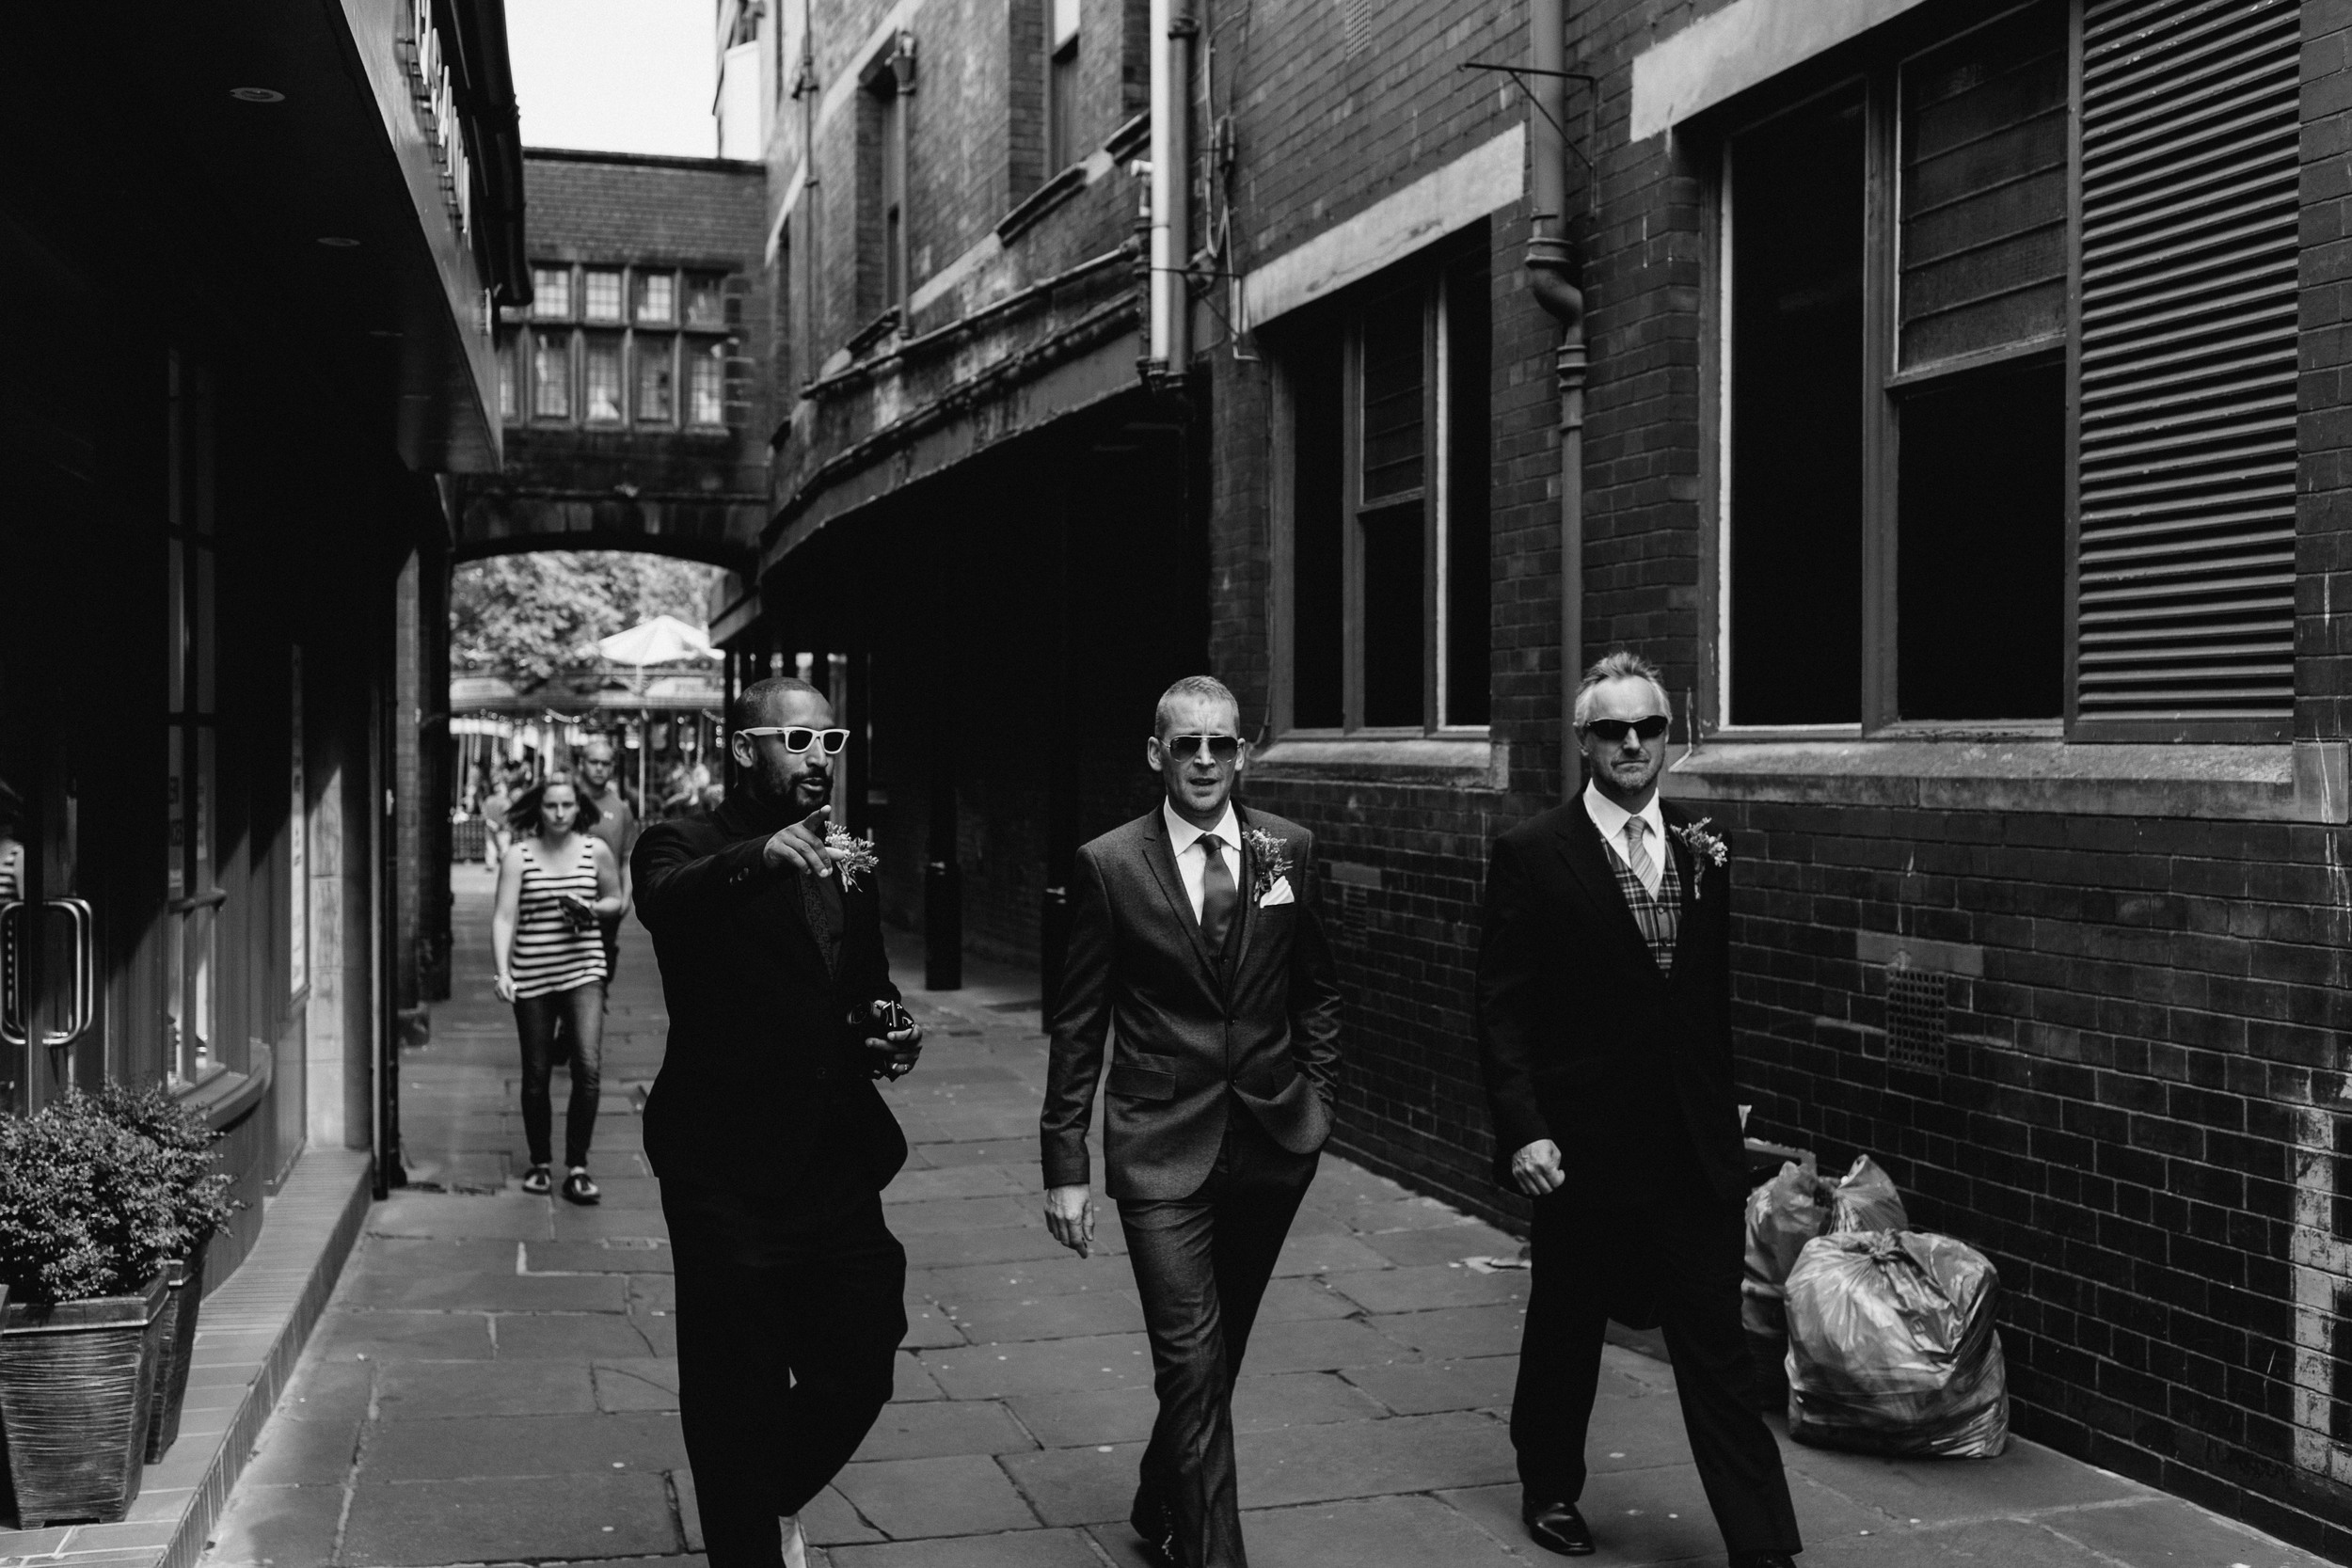 Martin and his groomsmen walk through a back alley in Carlisle while wearing sunglasses